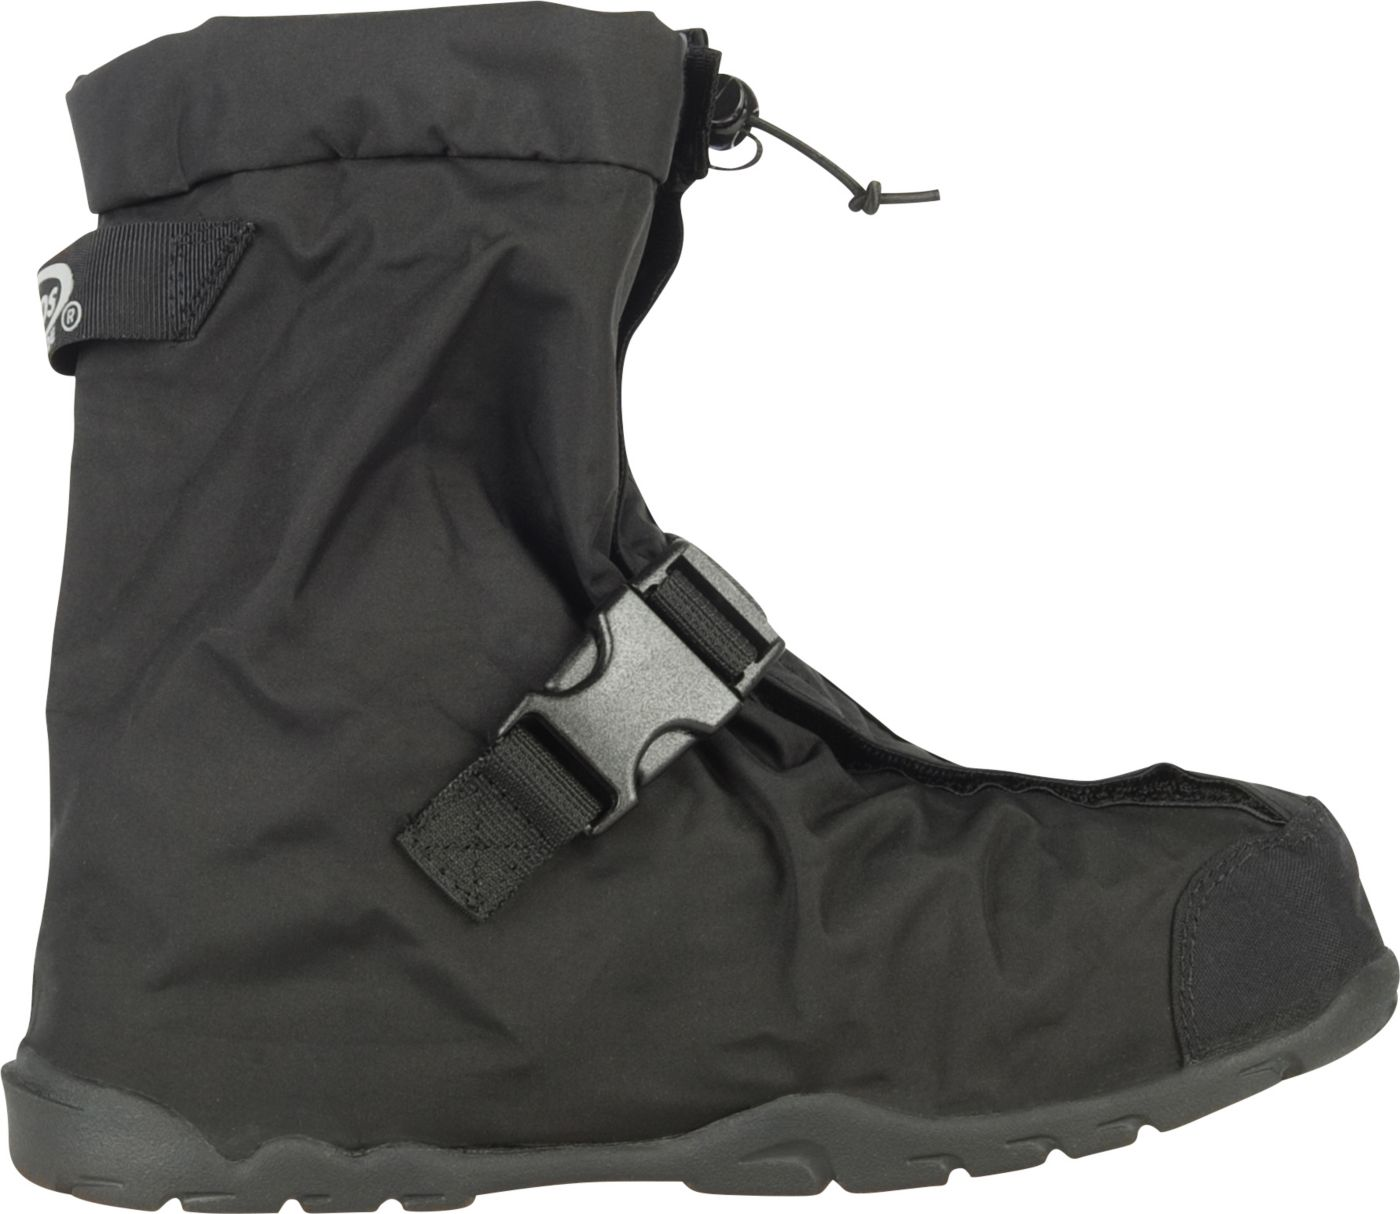 NEOS Adult Villager Waterproof Overshoes